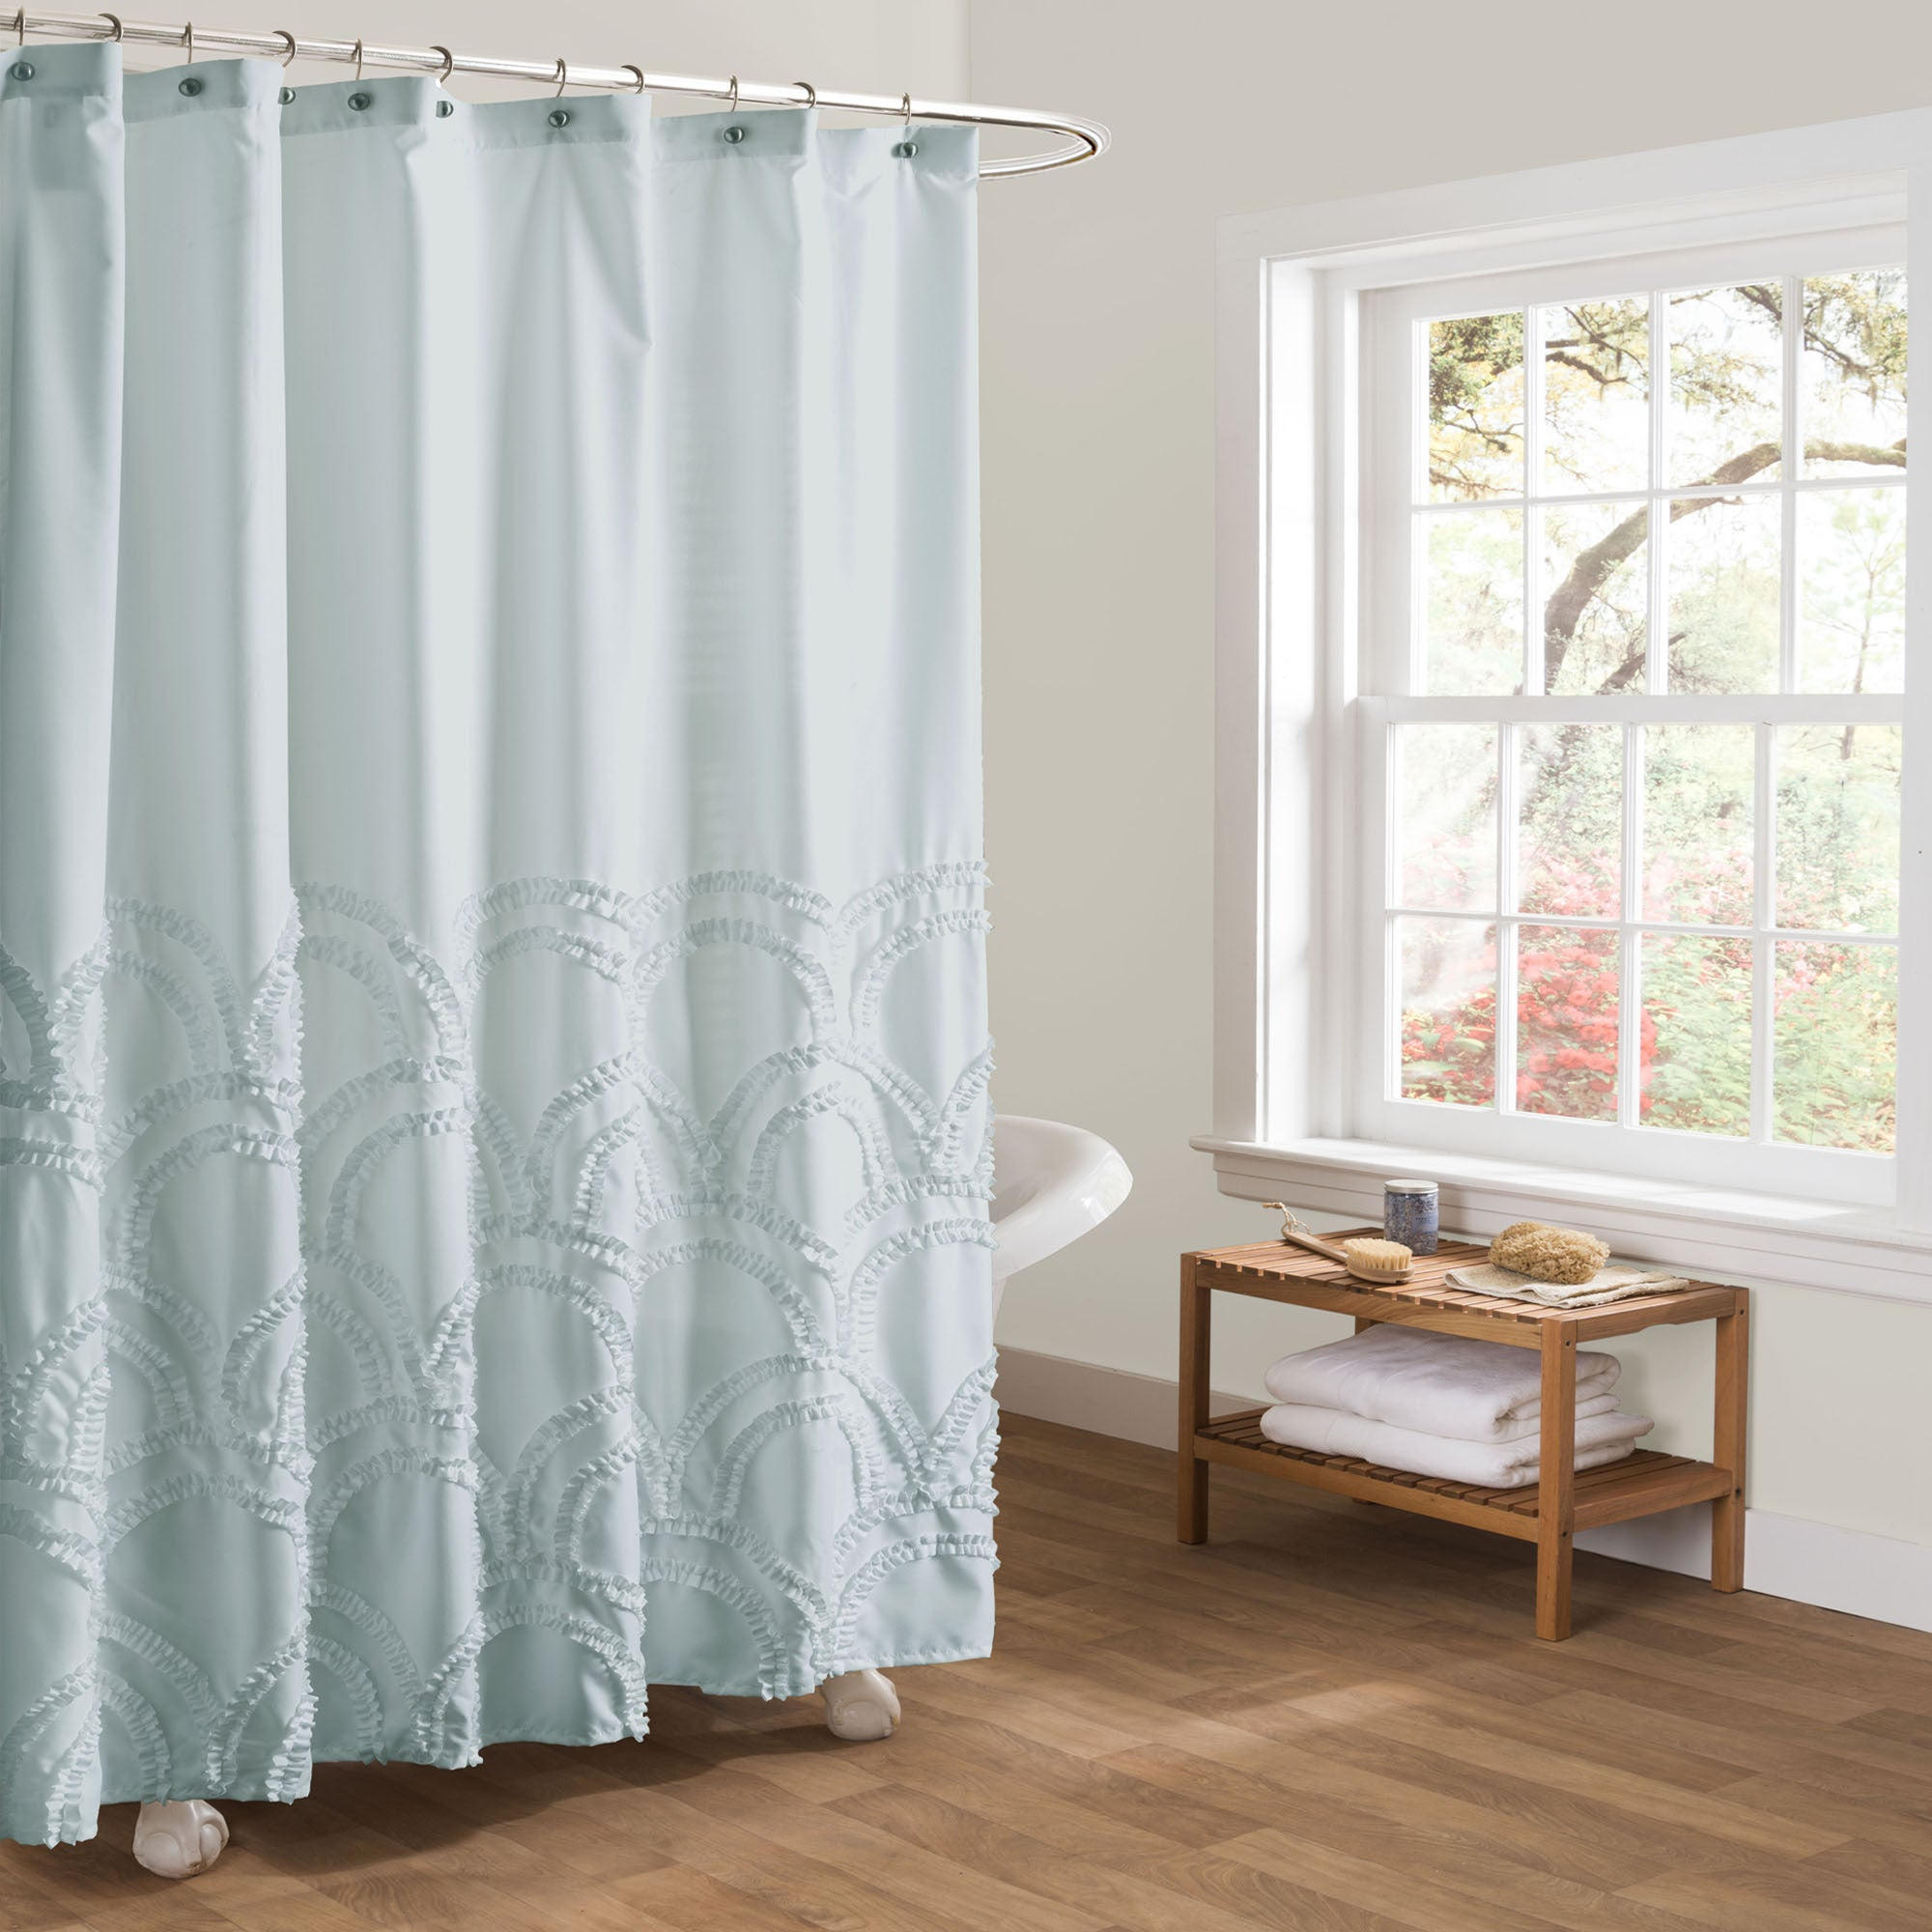 spa itm curtain mp curtains shower biloxipensacolahudson park sc biloxi madison ebay silver jacquard